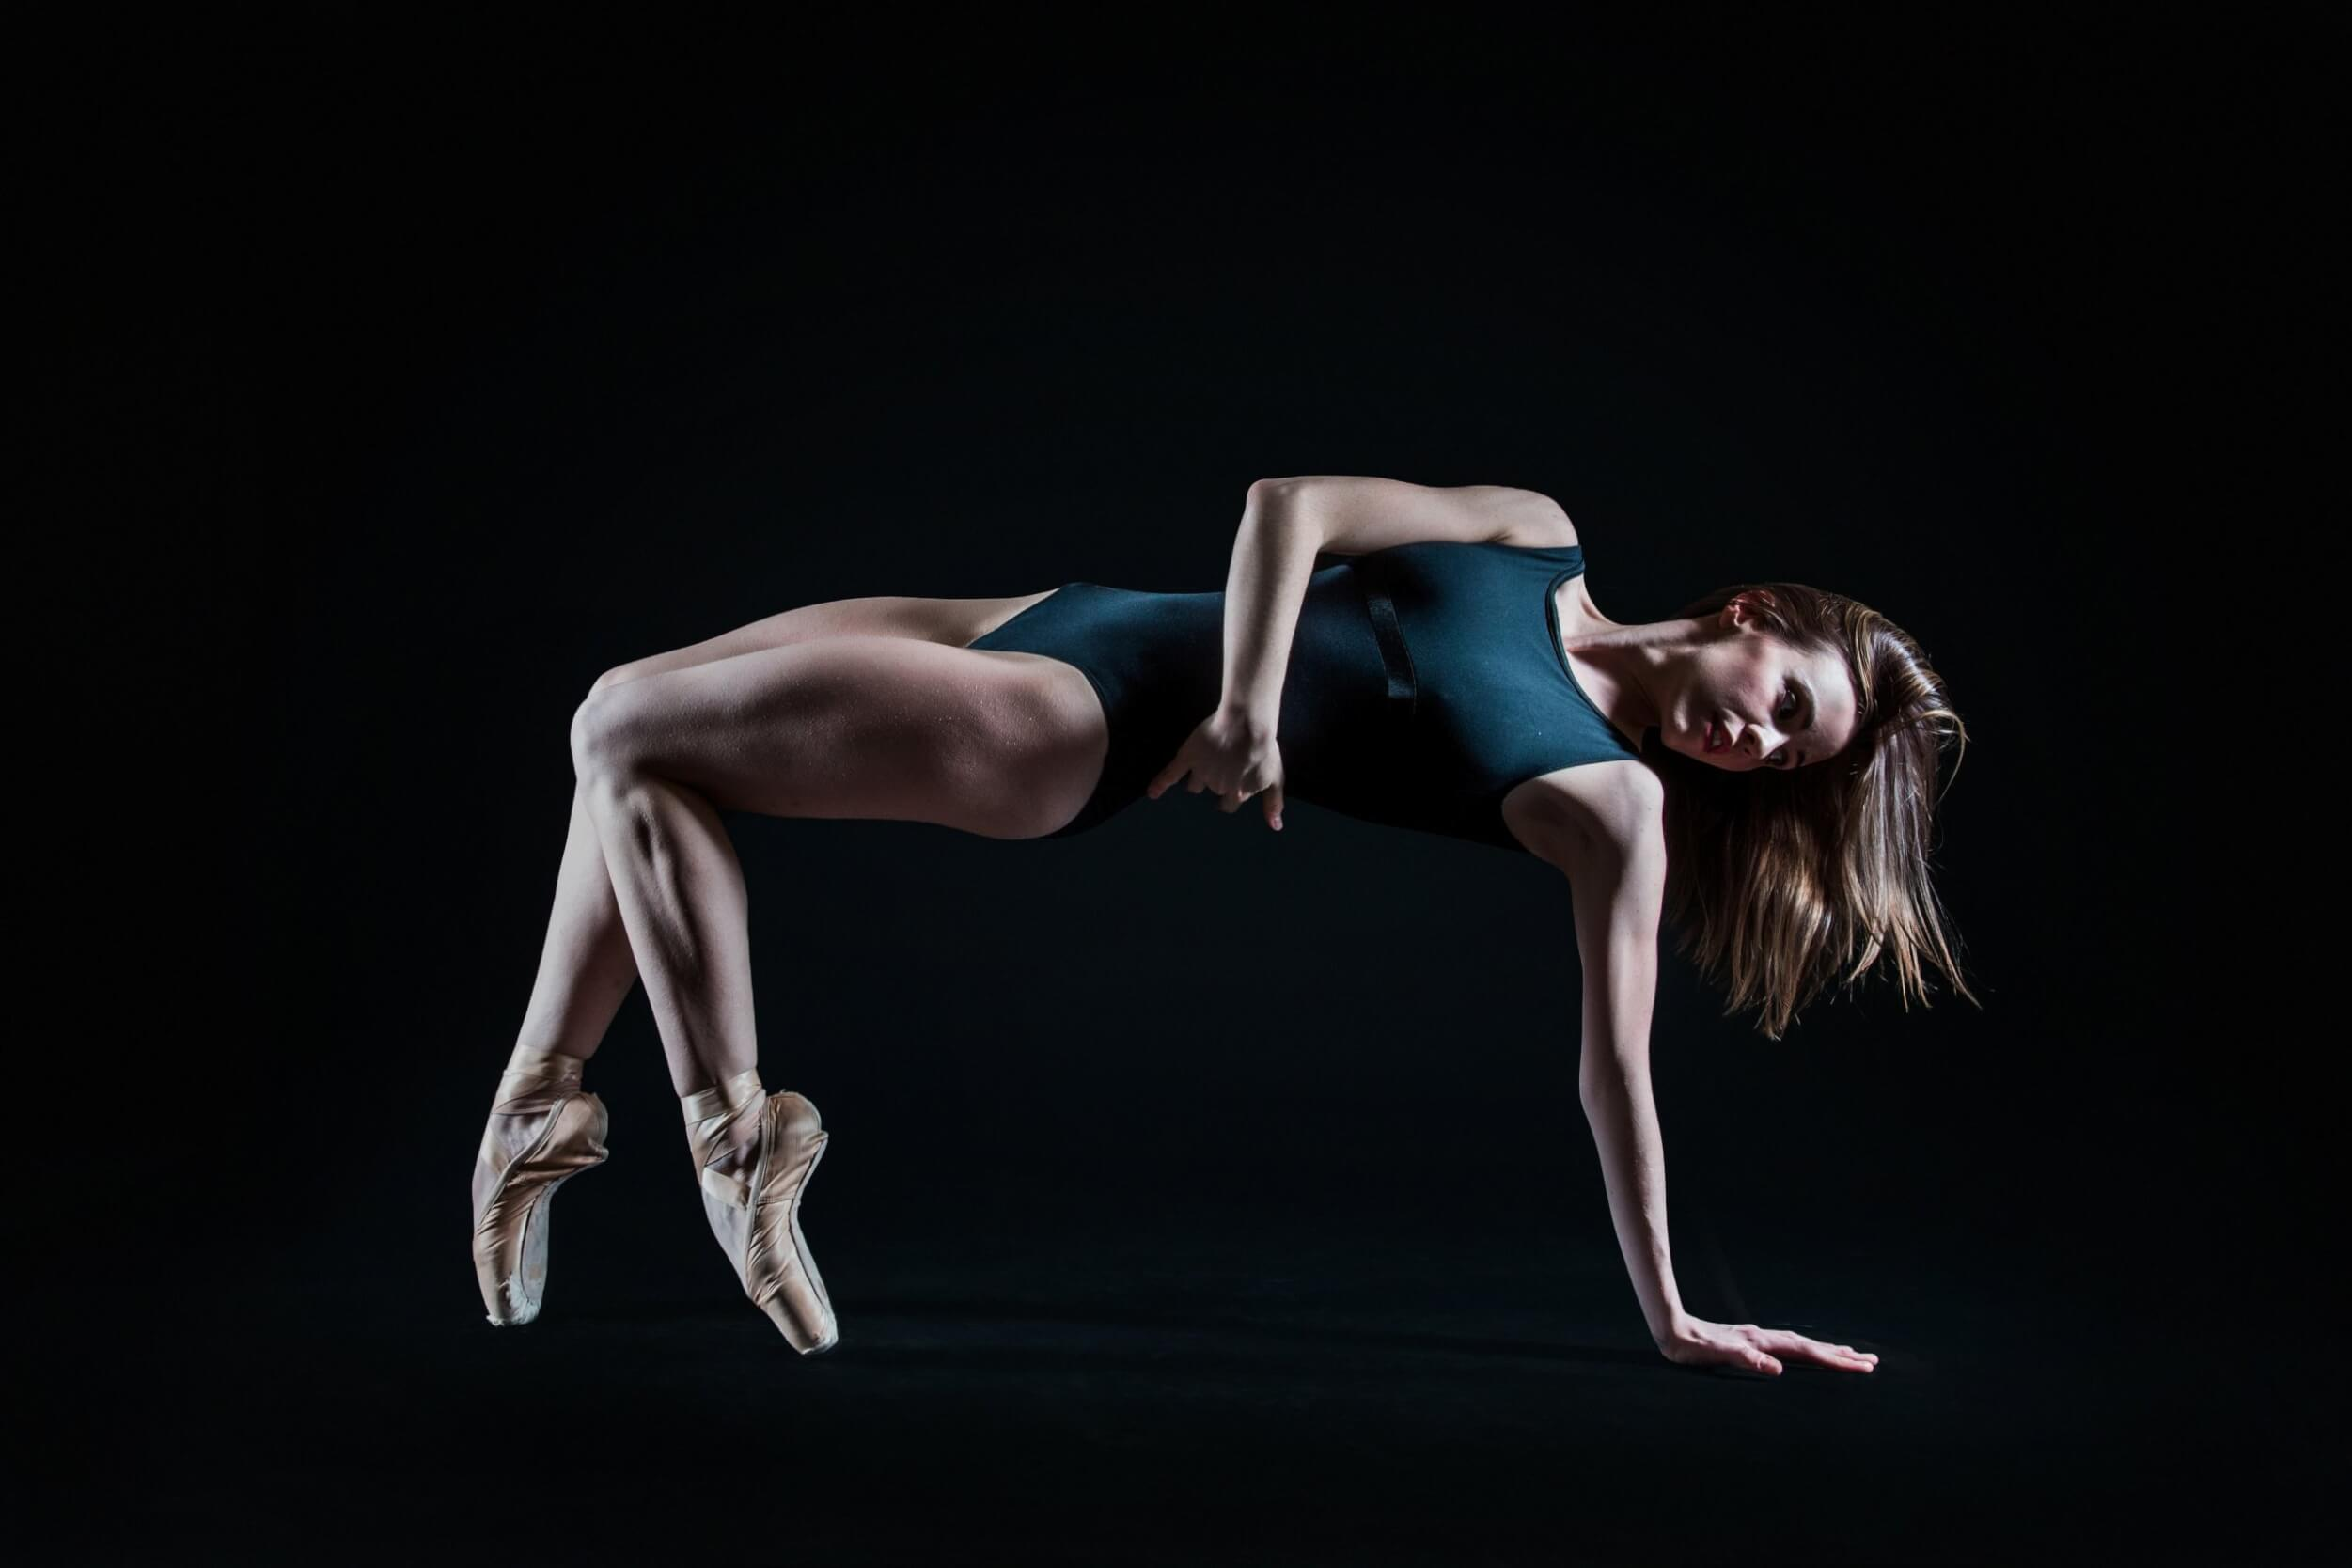 Kiera Keglowitsch in a turquoise bodysuit and ballet slippers posing in a ballet pose with two feet and on earm touching the ground